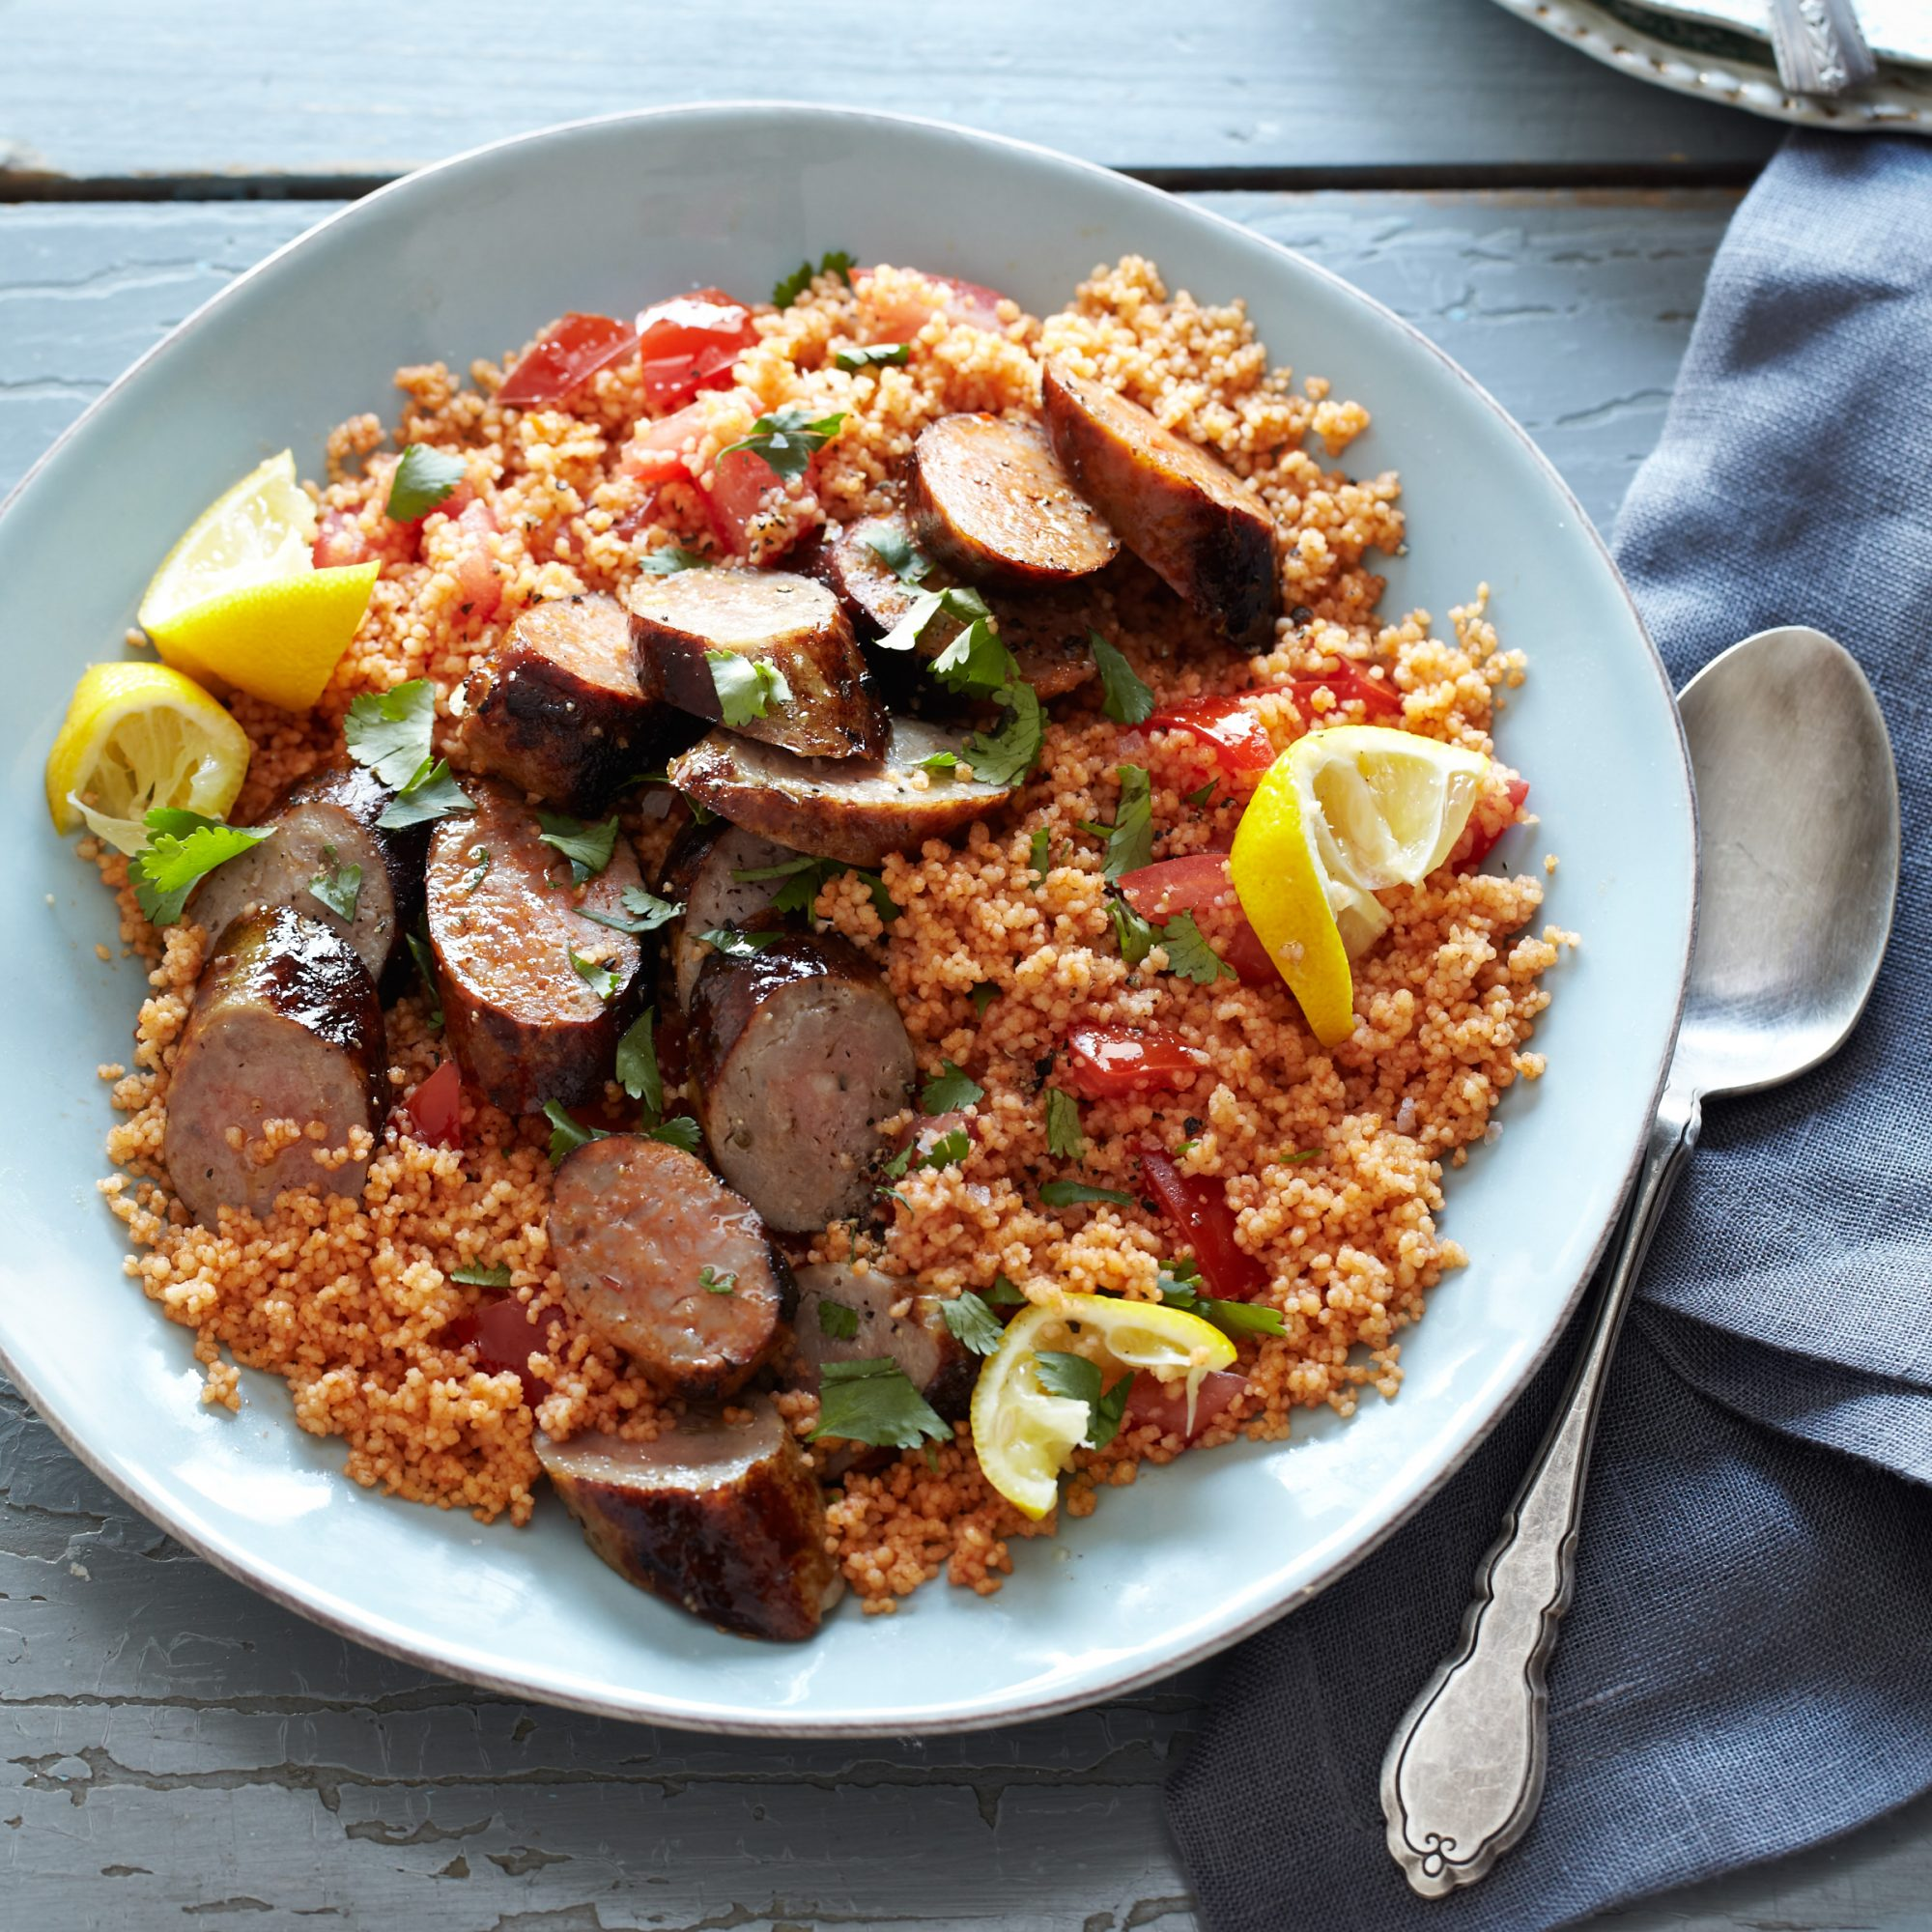 original-201307-r-tunisian-couscous-salad-with-grilled-sausages.jpg